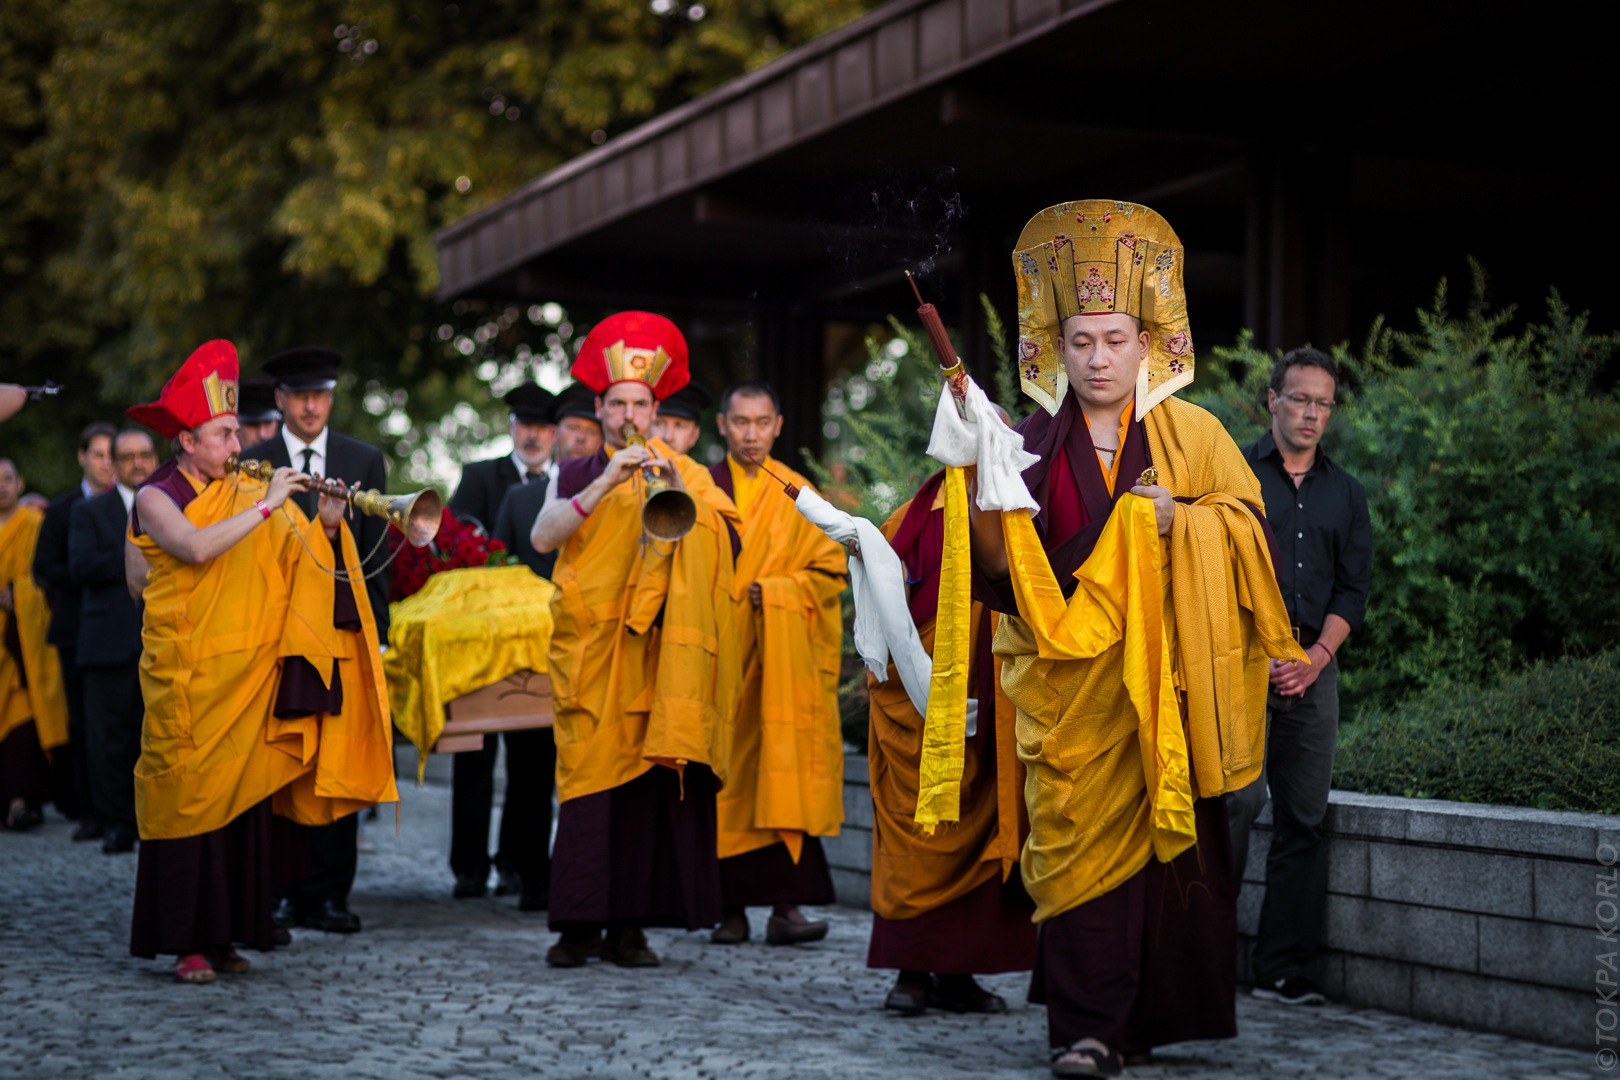 The 17th Karmapa Thaye Dorje escorts Shamar Rinpoche's body out of the funeral hall in Renchen, Germany. Photographer: Tokpa Korlo